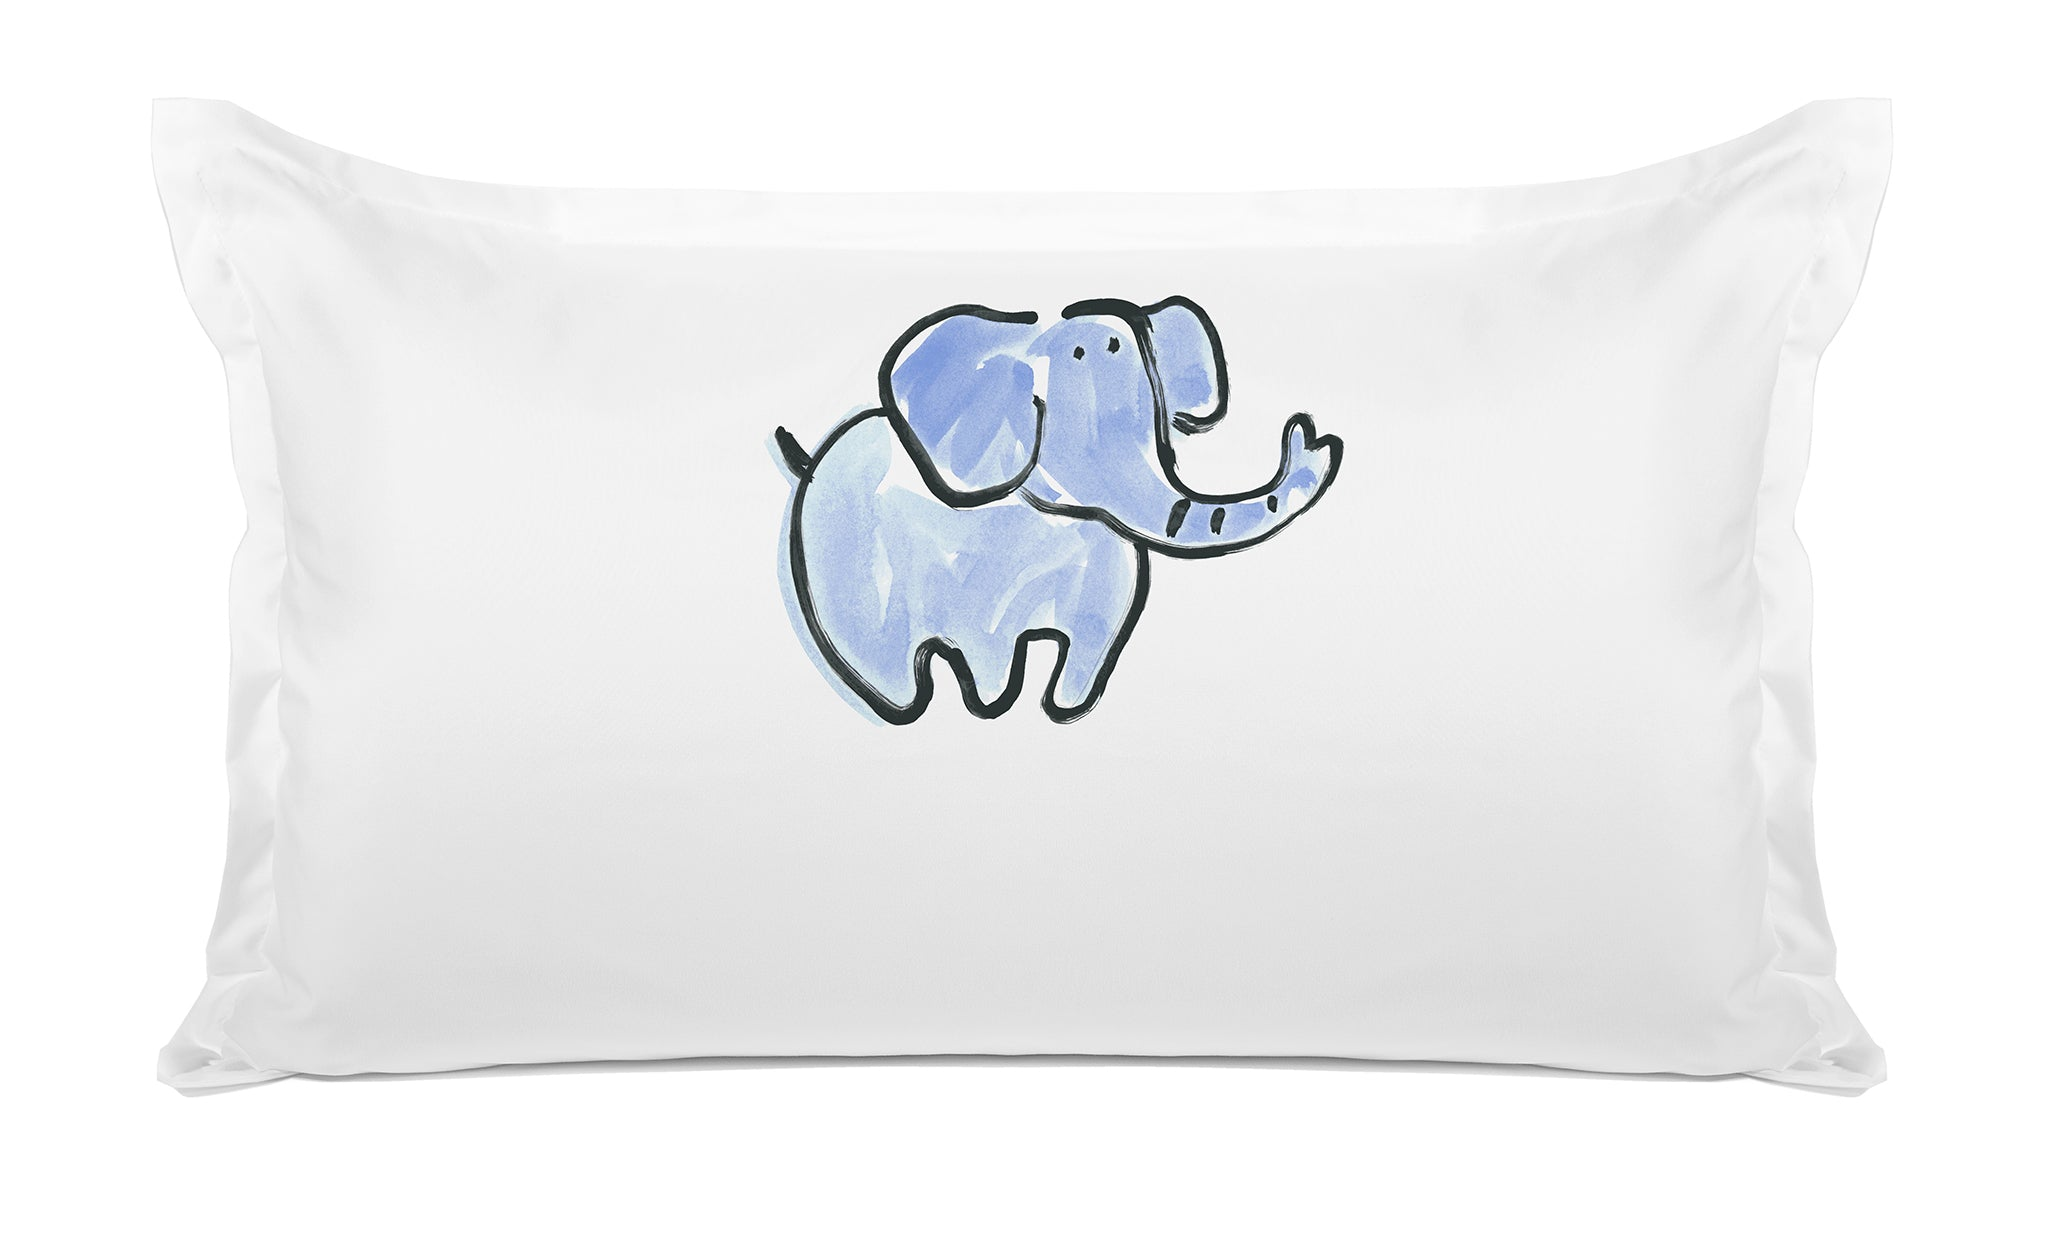 Jumbo - Personalized Kids Pillowcase Collection-Di Lewis